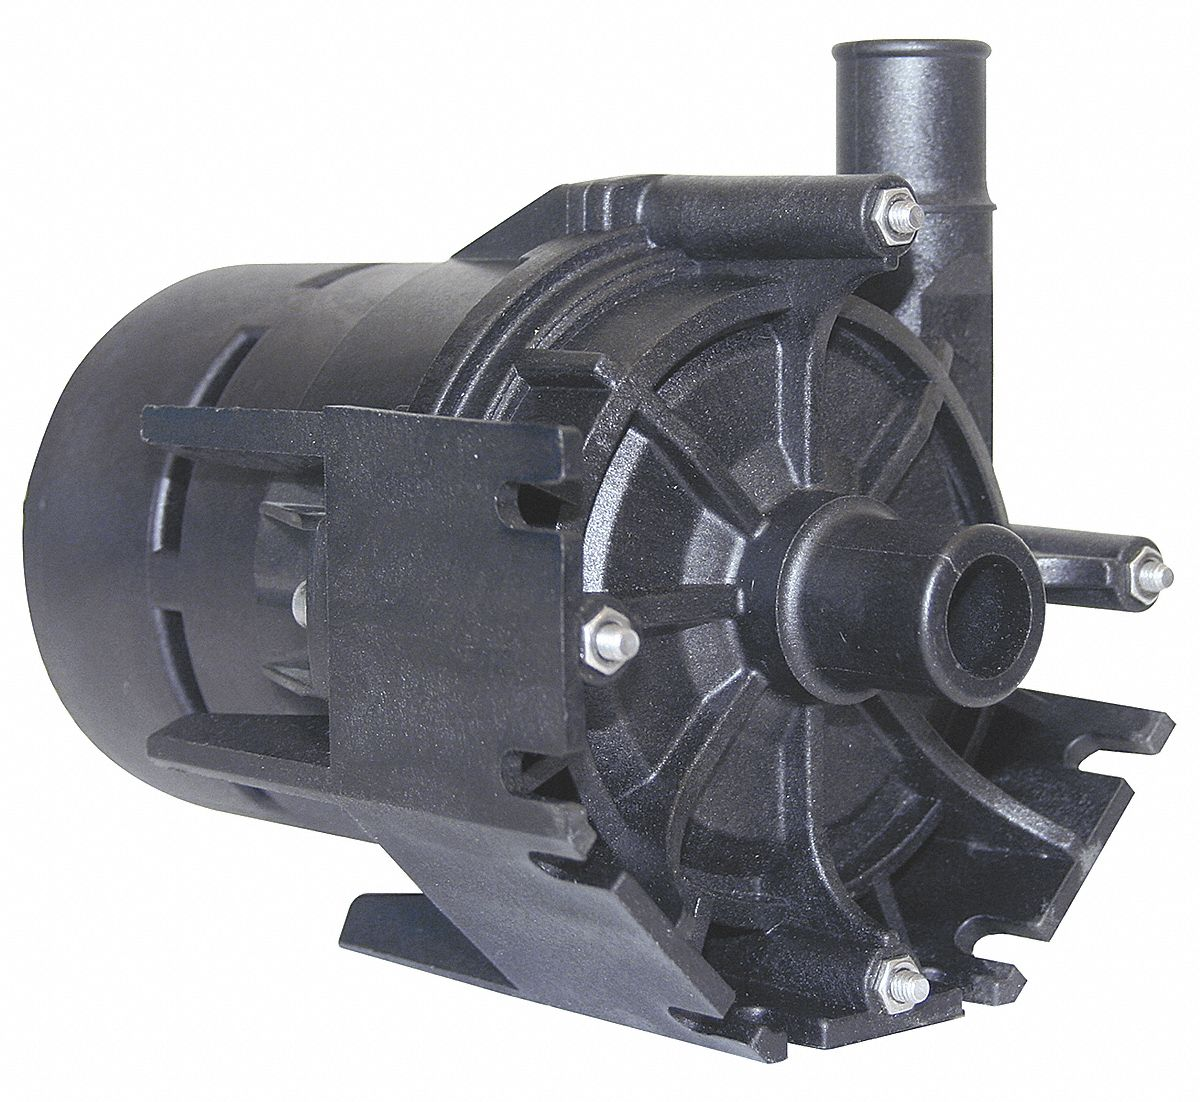 Noryl 1/25 hp HP Centrifugal Pump, 1 Phase, 115 Voltage